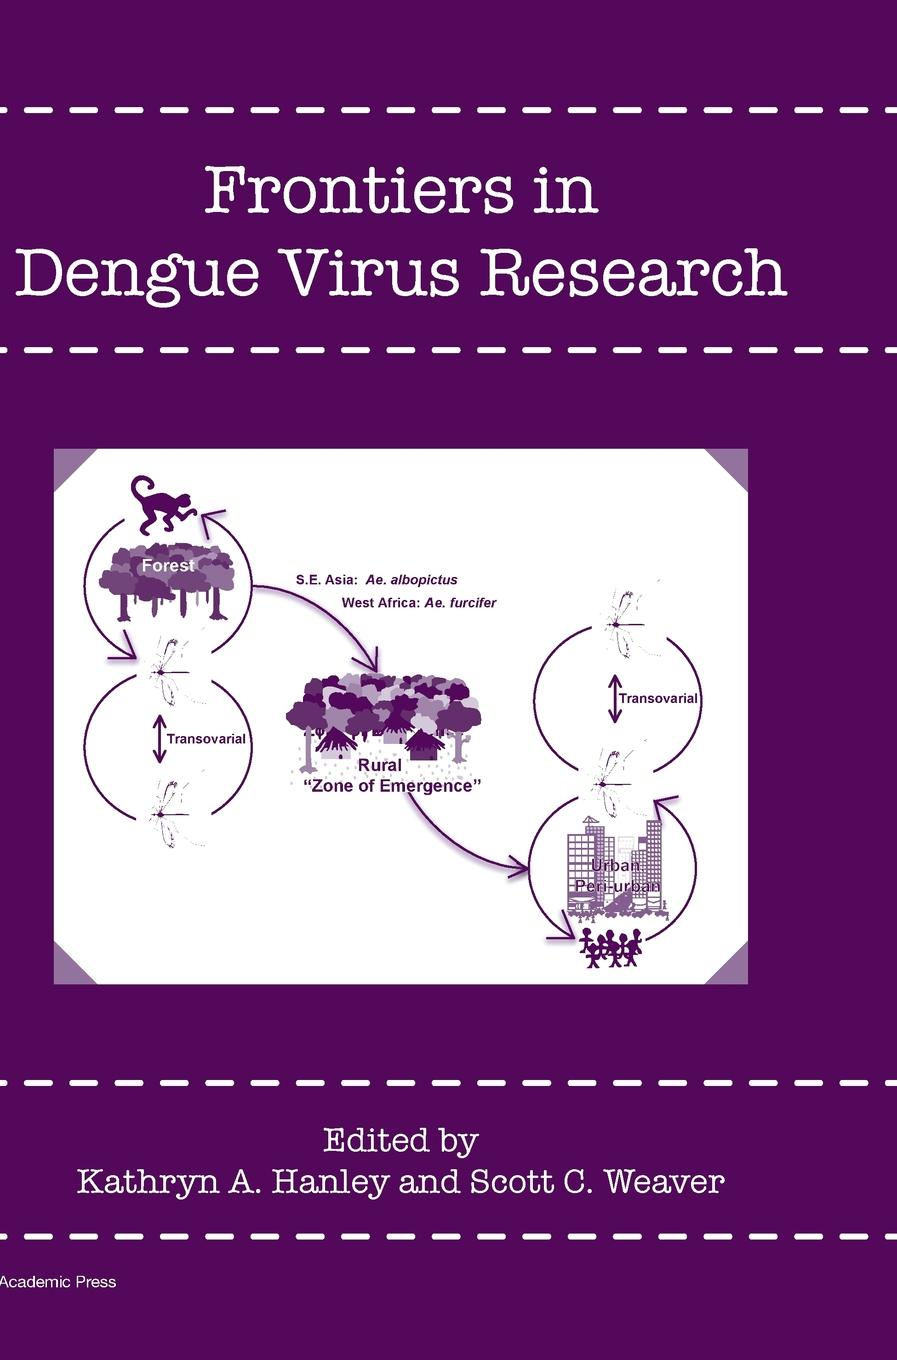 Frontiers in Dengue Virus Research